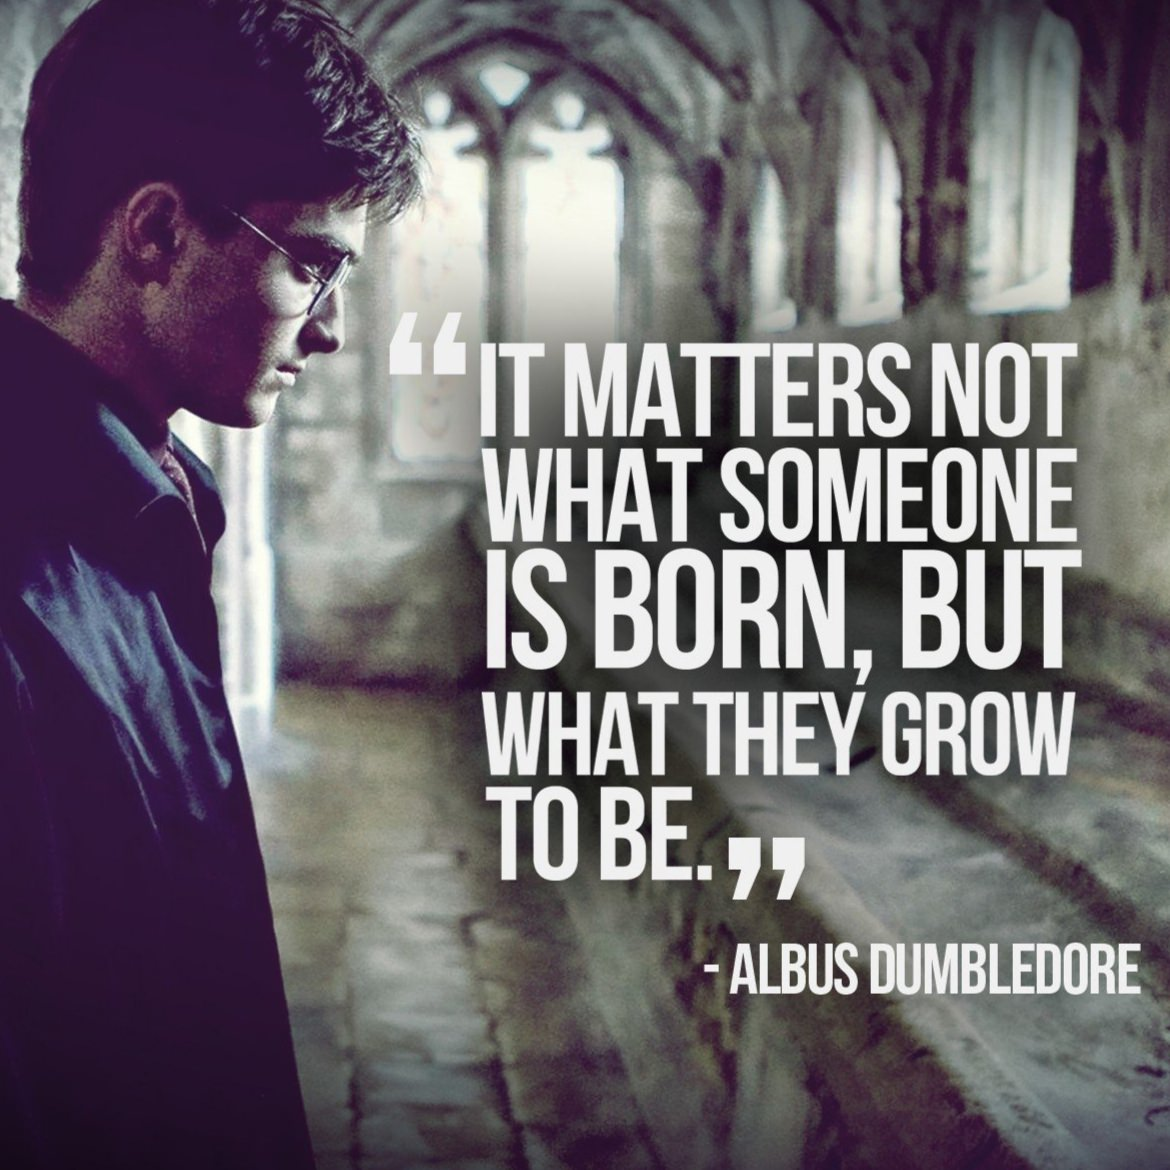 [Image] it matters not what someone is born, but what they grow to be!